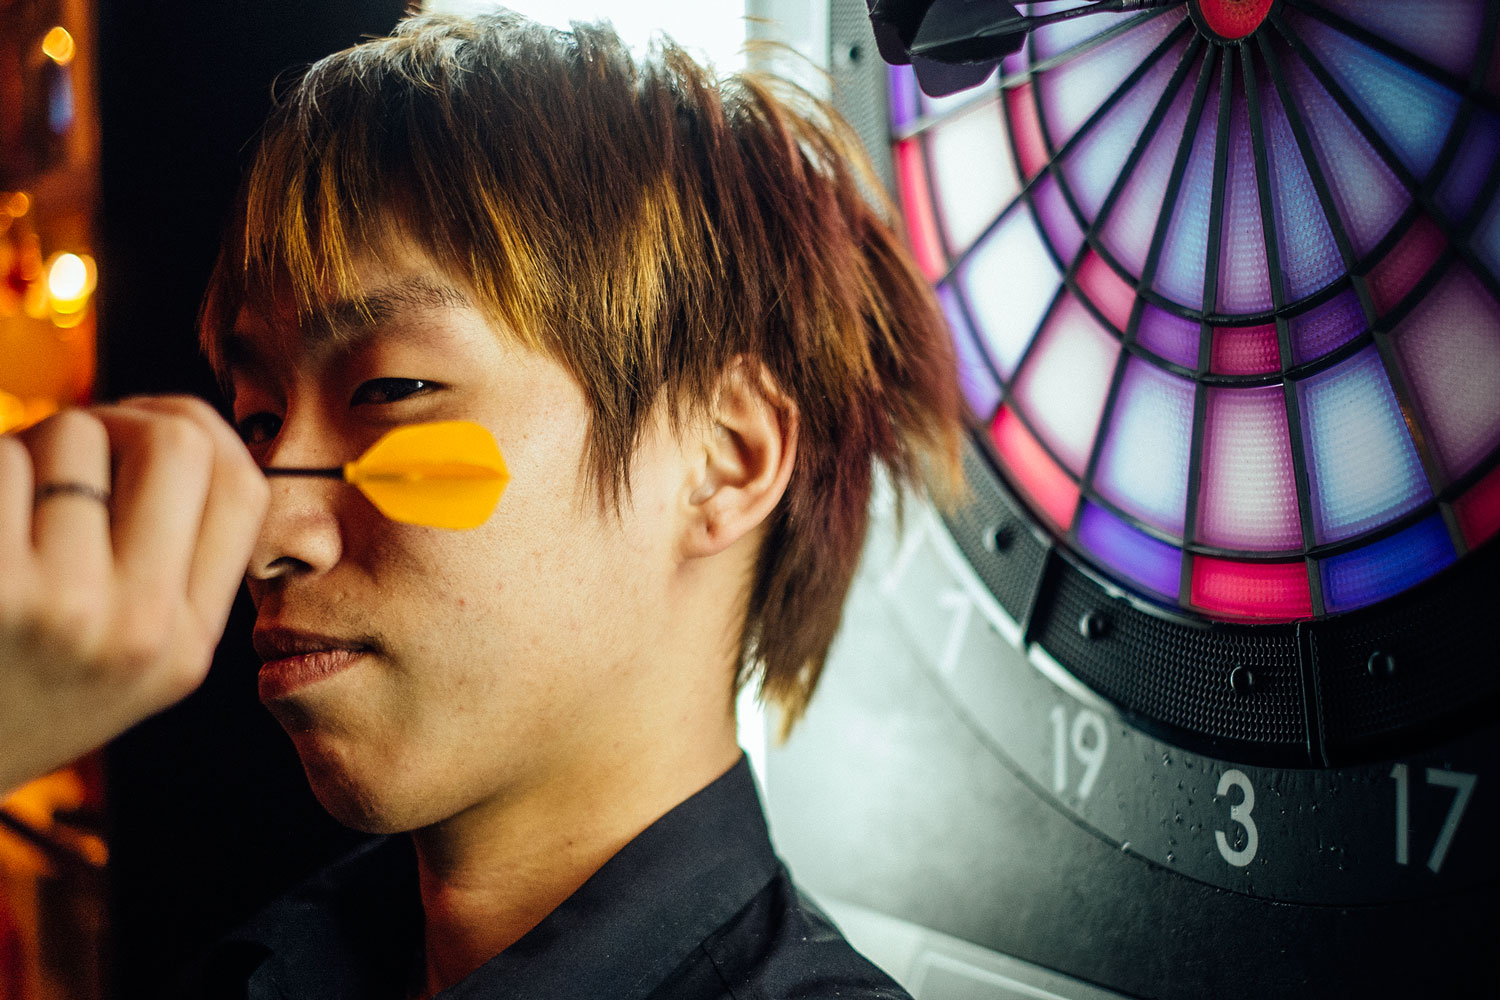 Mitsuhiro and his darts-addicton